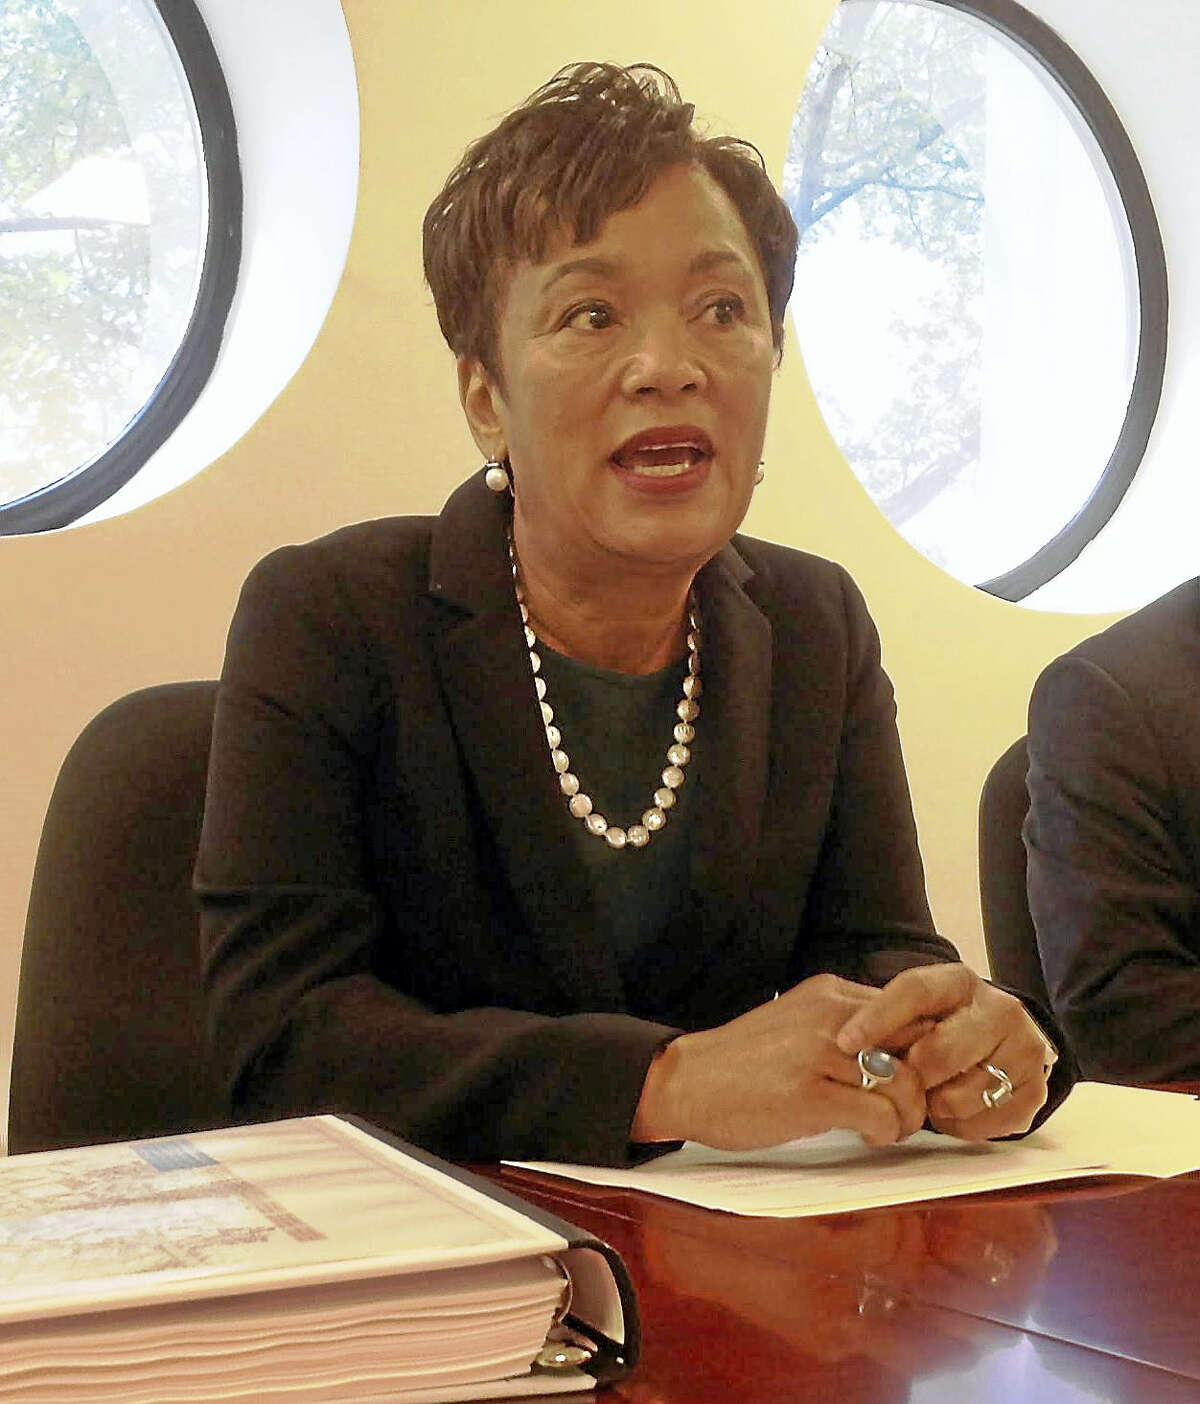 New Haven Mayor Toni N. Harp makes a point during an editorial board meeting with the New Haven Register.